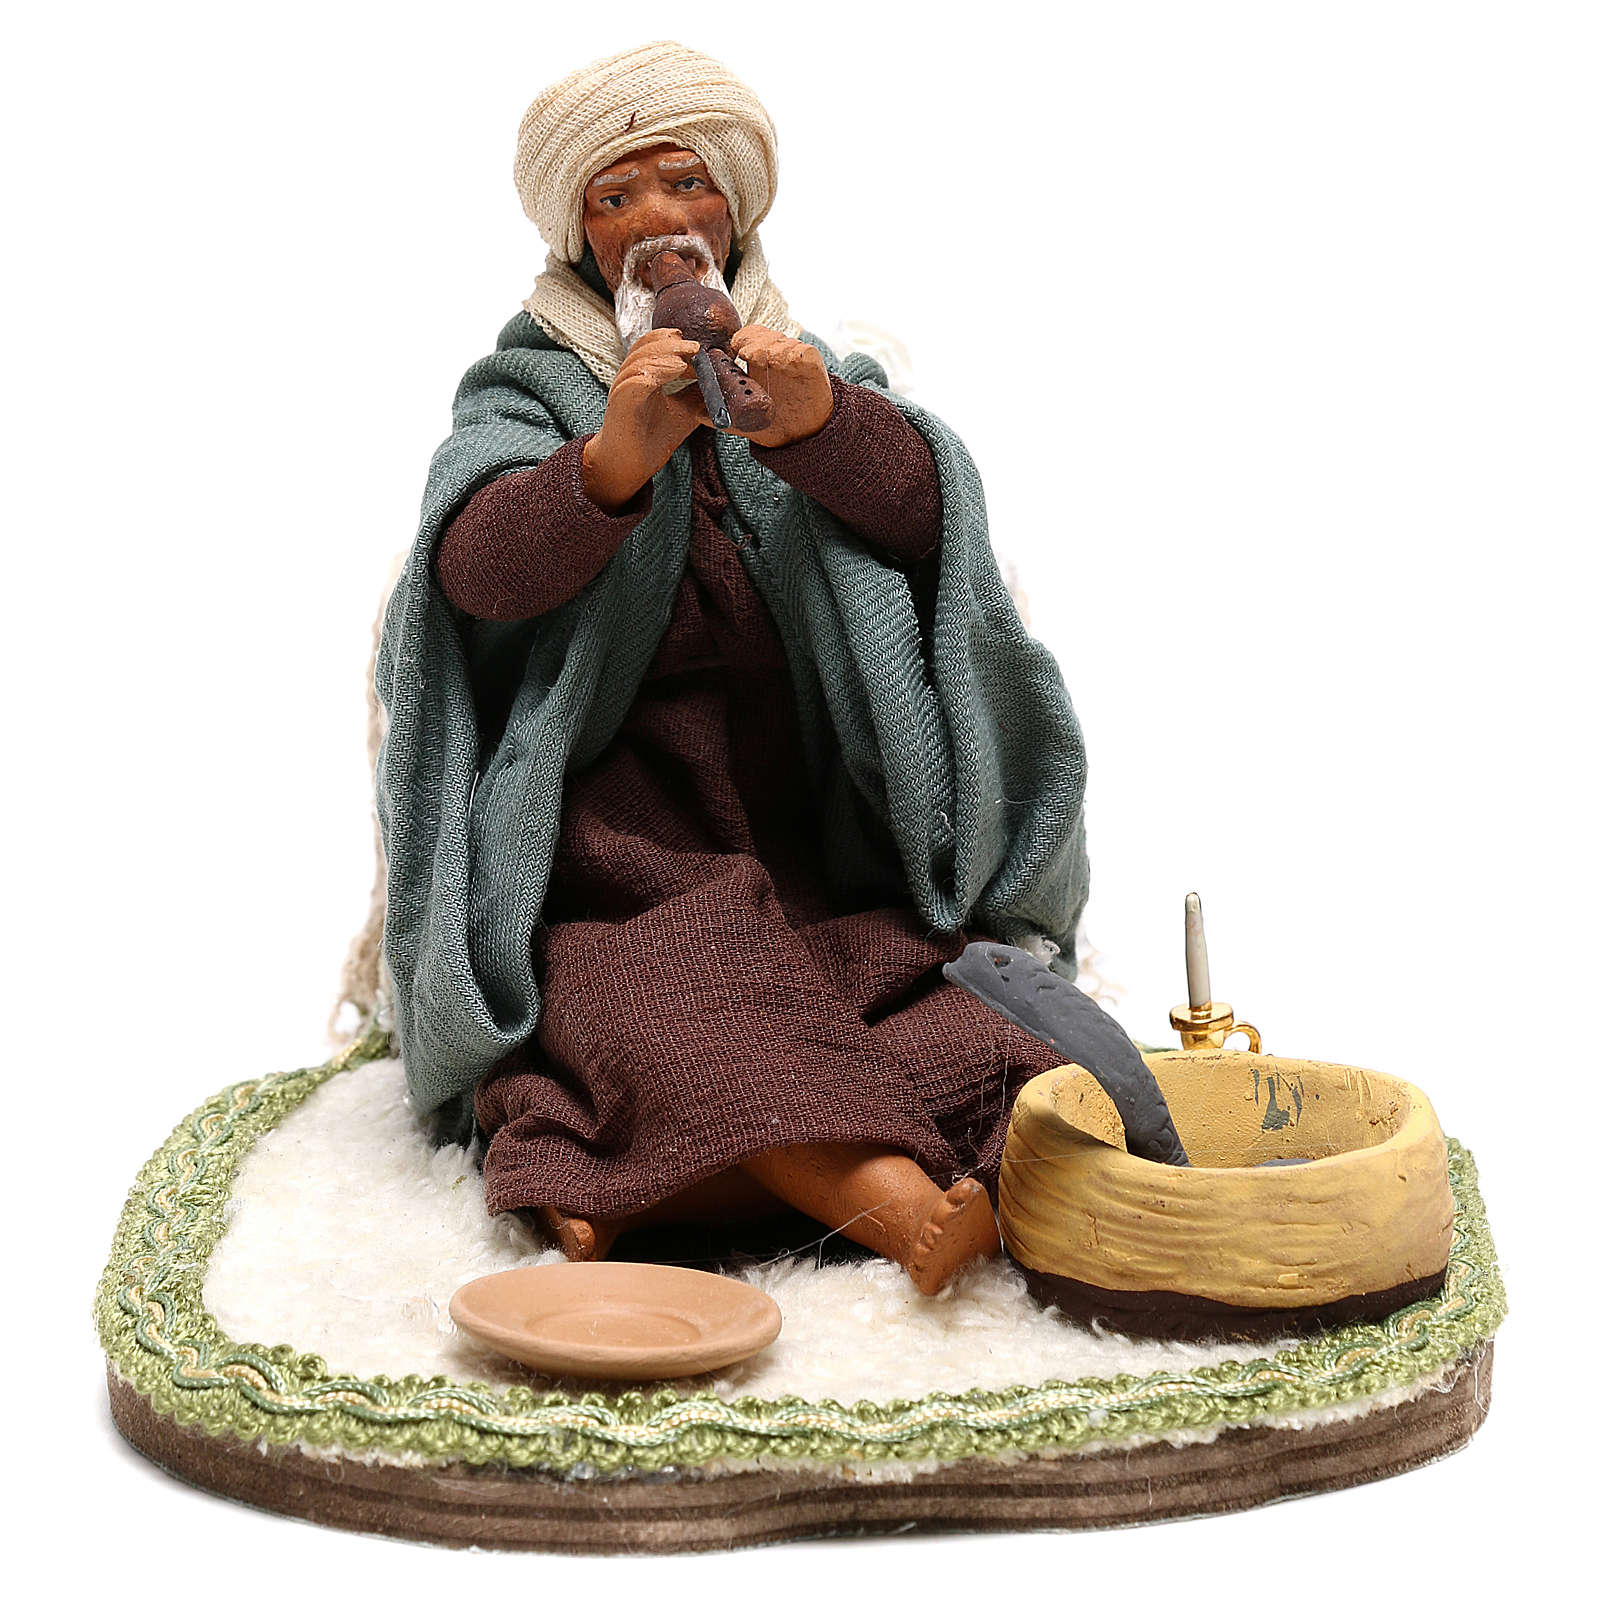 Moving snake charmer 14 cm for Arabian style Neapolitan nativity scene 4